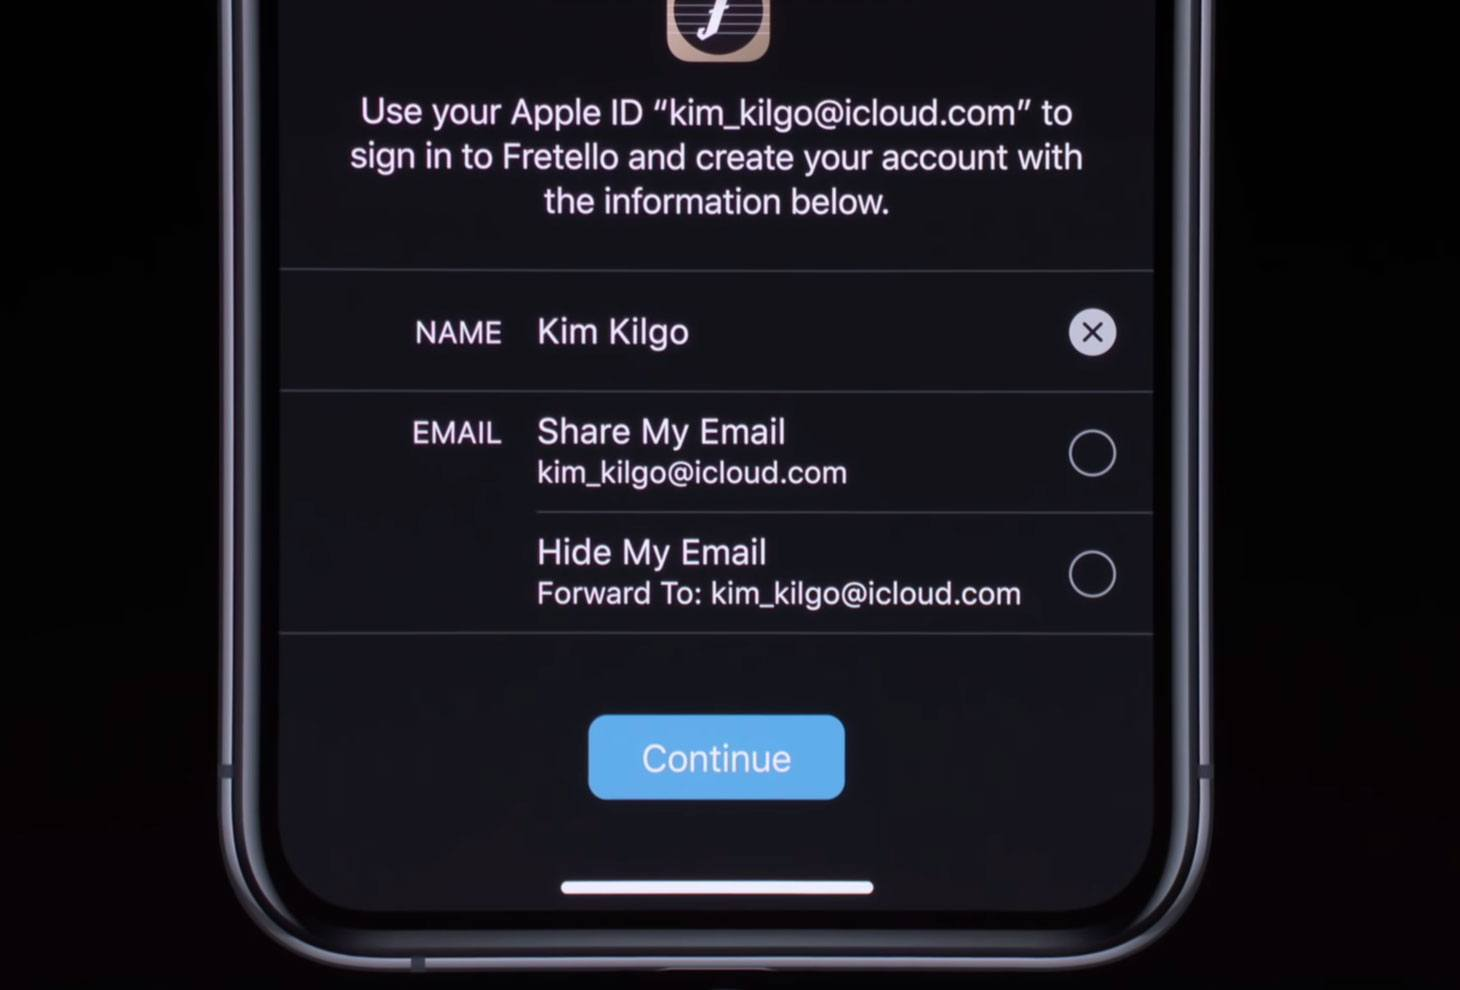 Sign In with Apple: Choice of e-mail to be used for login — either real or a randomly generated one